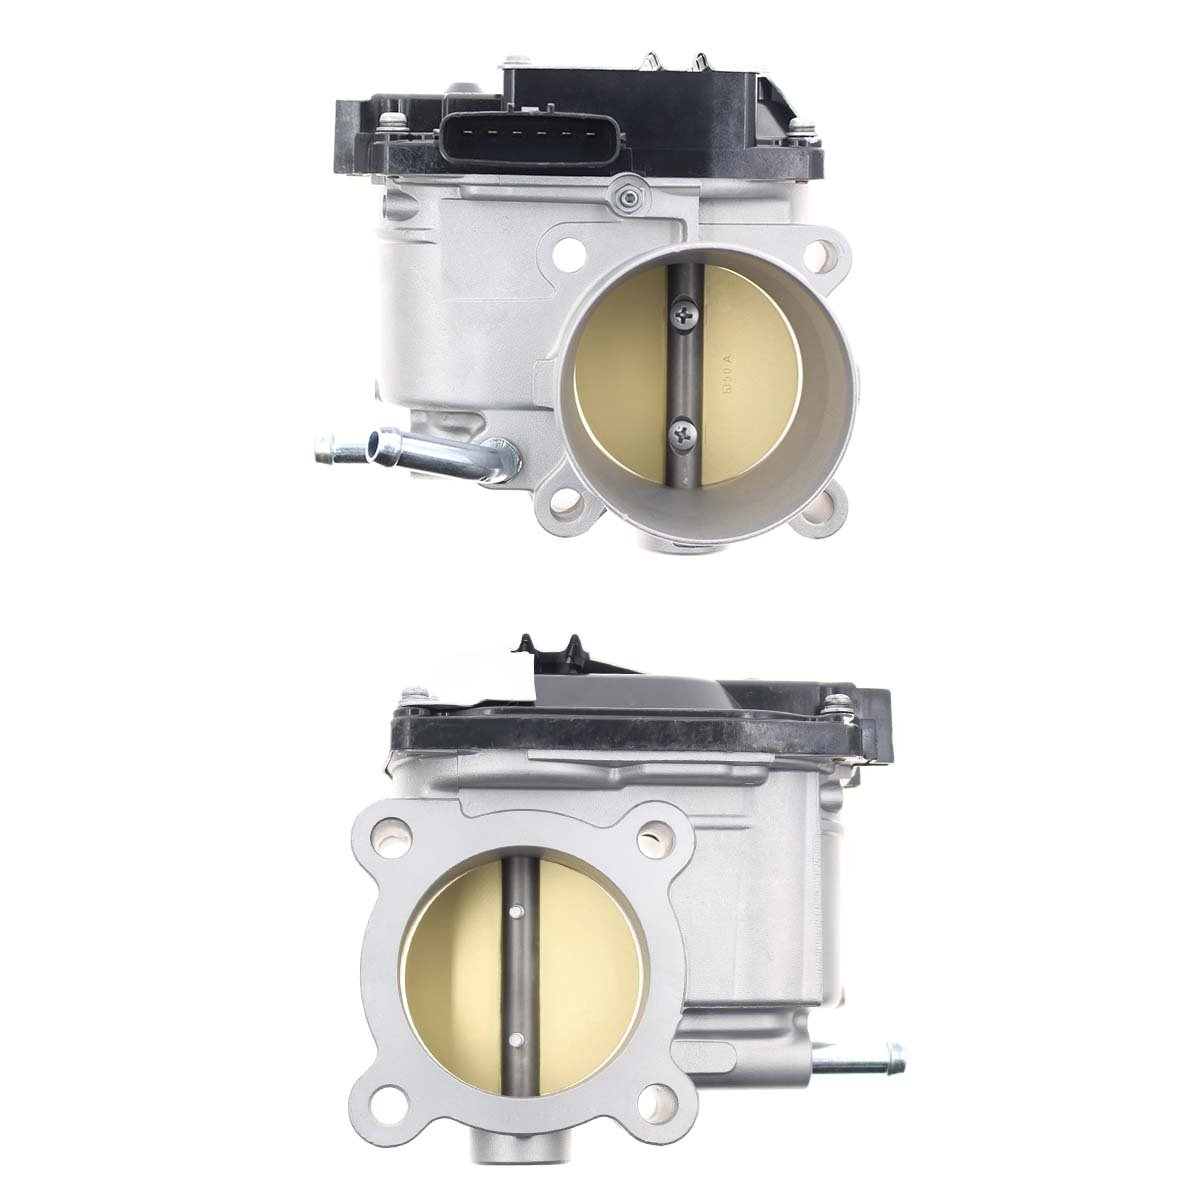 GooDeal Throttle Body EAC60-020 for Mitsubishi Eclipse Galant Lancer 2.4L 2004-2012